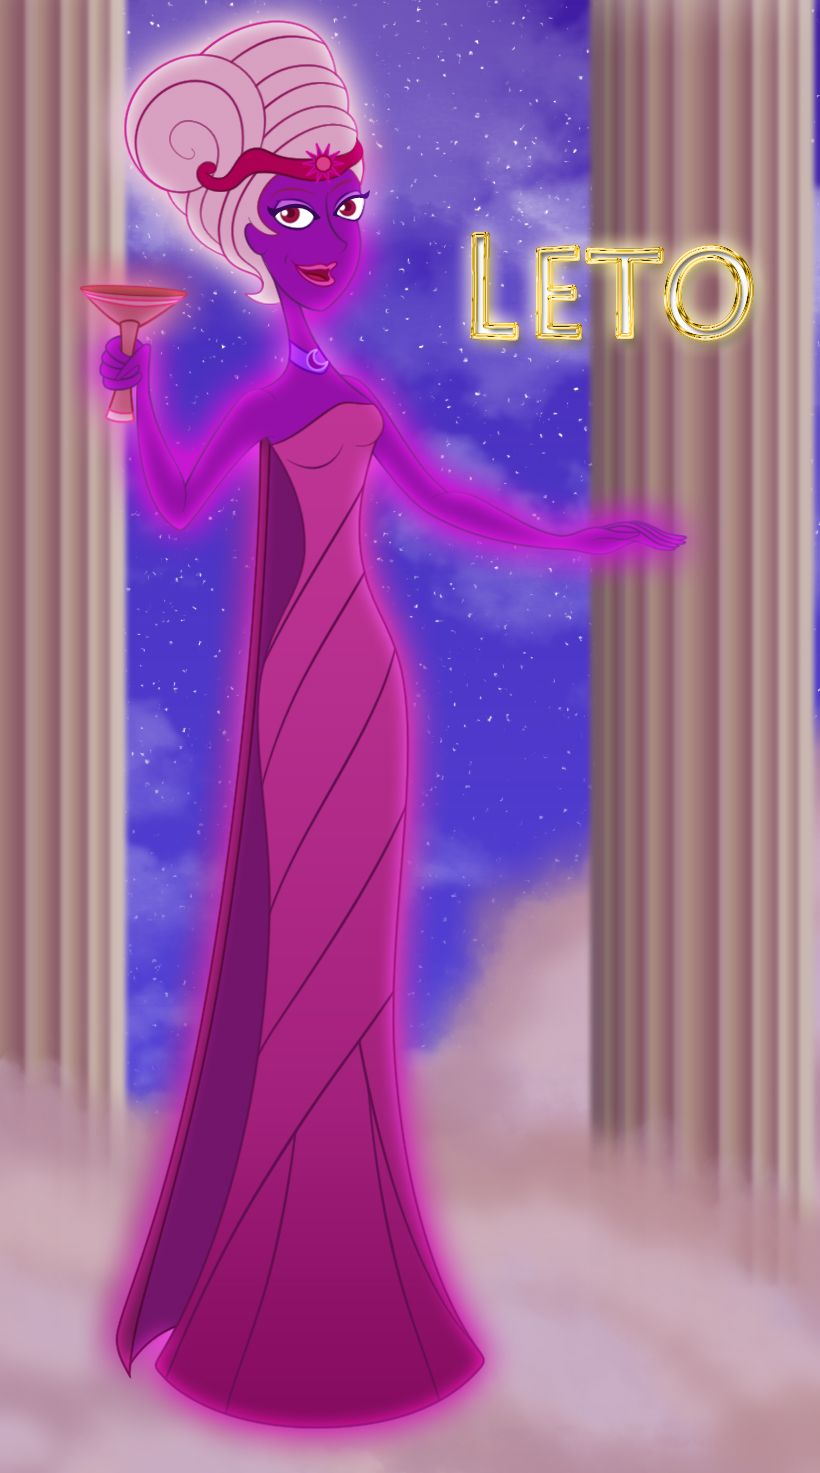 The Goddess Leto o, is a daughter of the Titans Coeus (god and divine incarnation of the ...